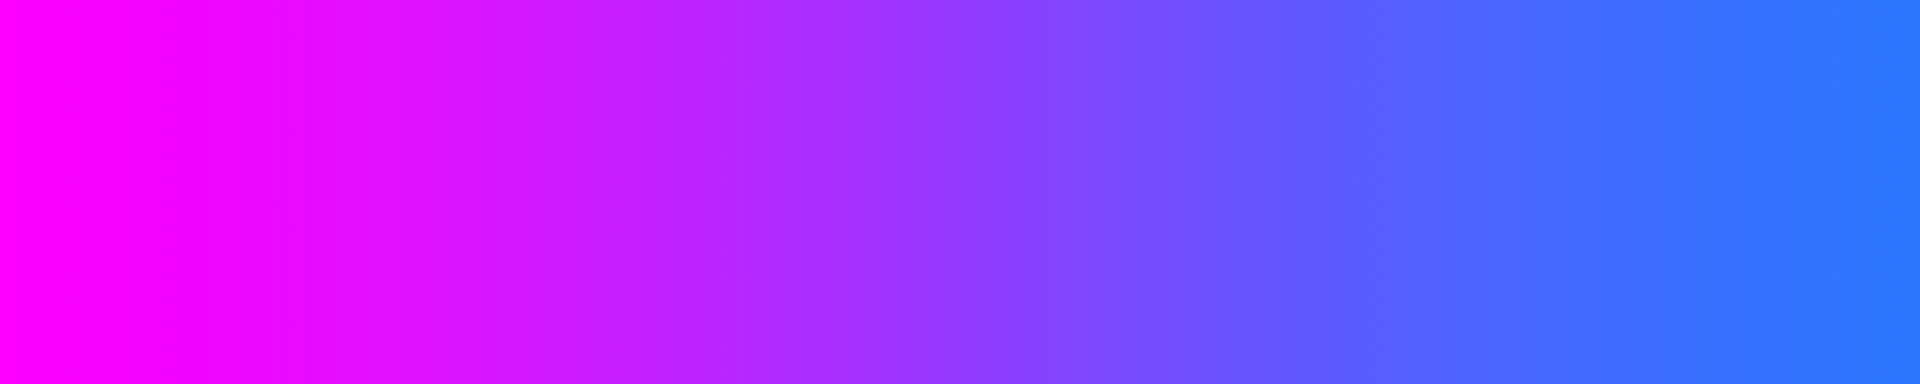 Pink to Blue.png